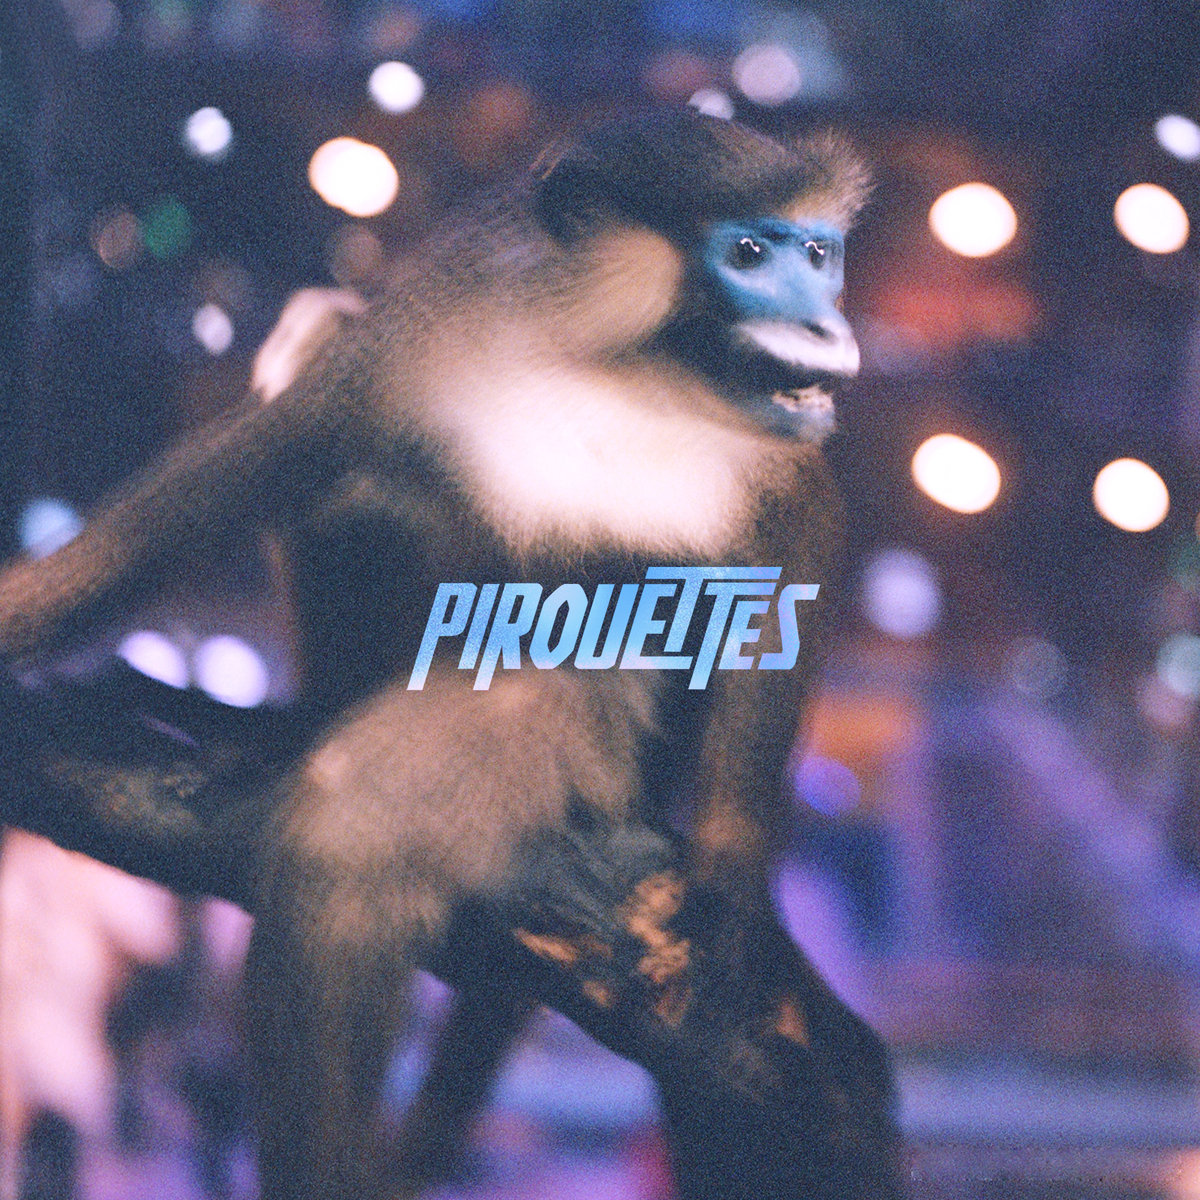 The Pirouettes x Vicky Chérie - Pirouettes (2013)